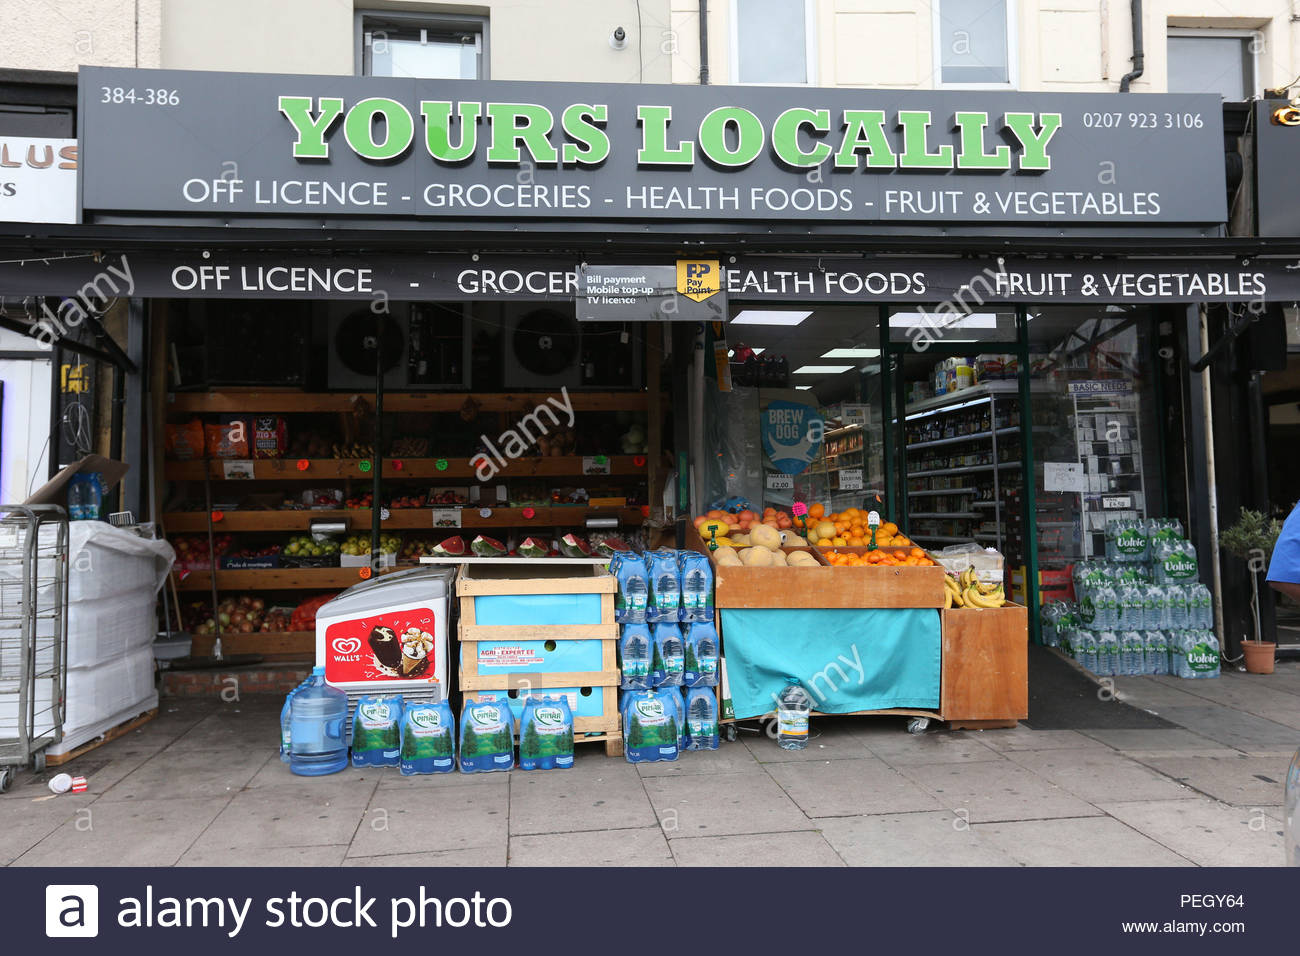 "File photo dated 23/07/17 of the Yours Locally shop in Kingsland Road, Dalston, east London. A police officer has been cleared of misconduct over the death of 20-year-old Rashan Charles who was restrained in an ""unorthodox"" way inside the shop. - Stock Image"